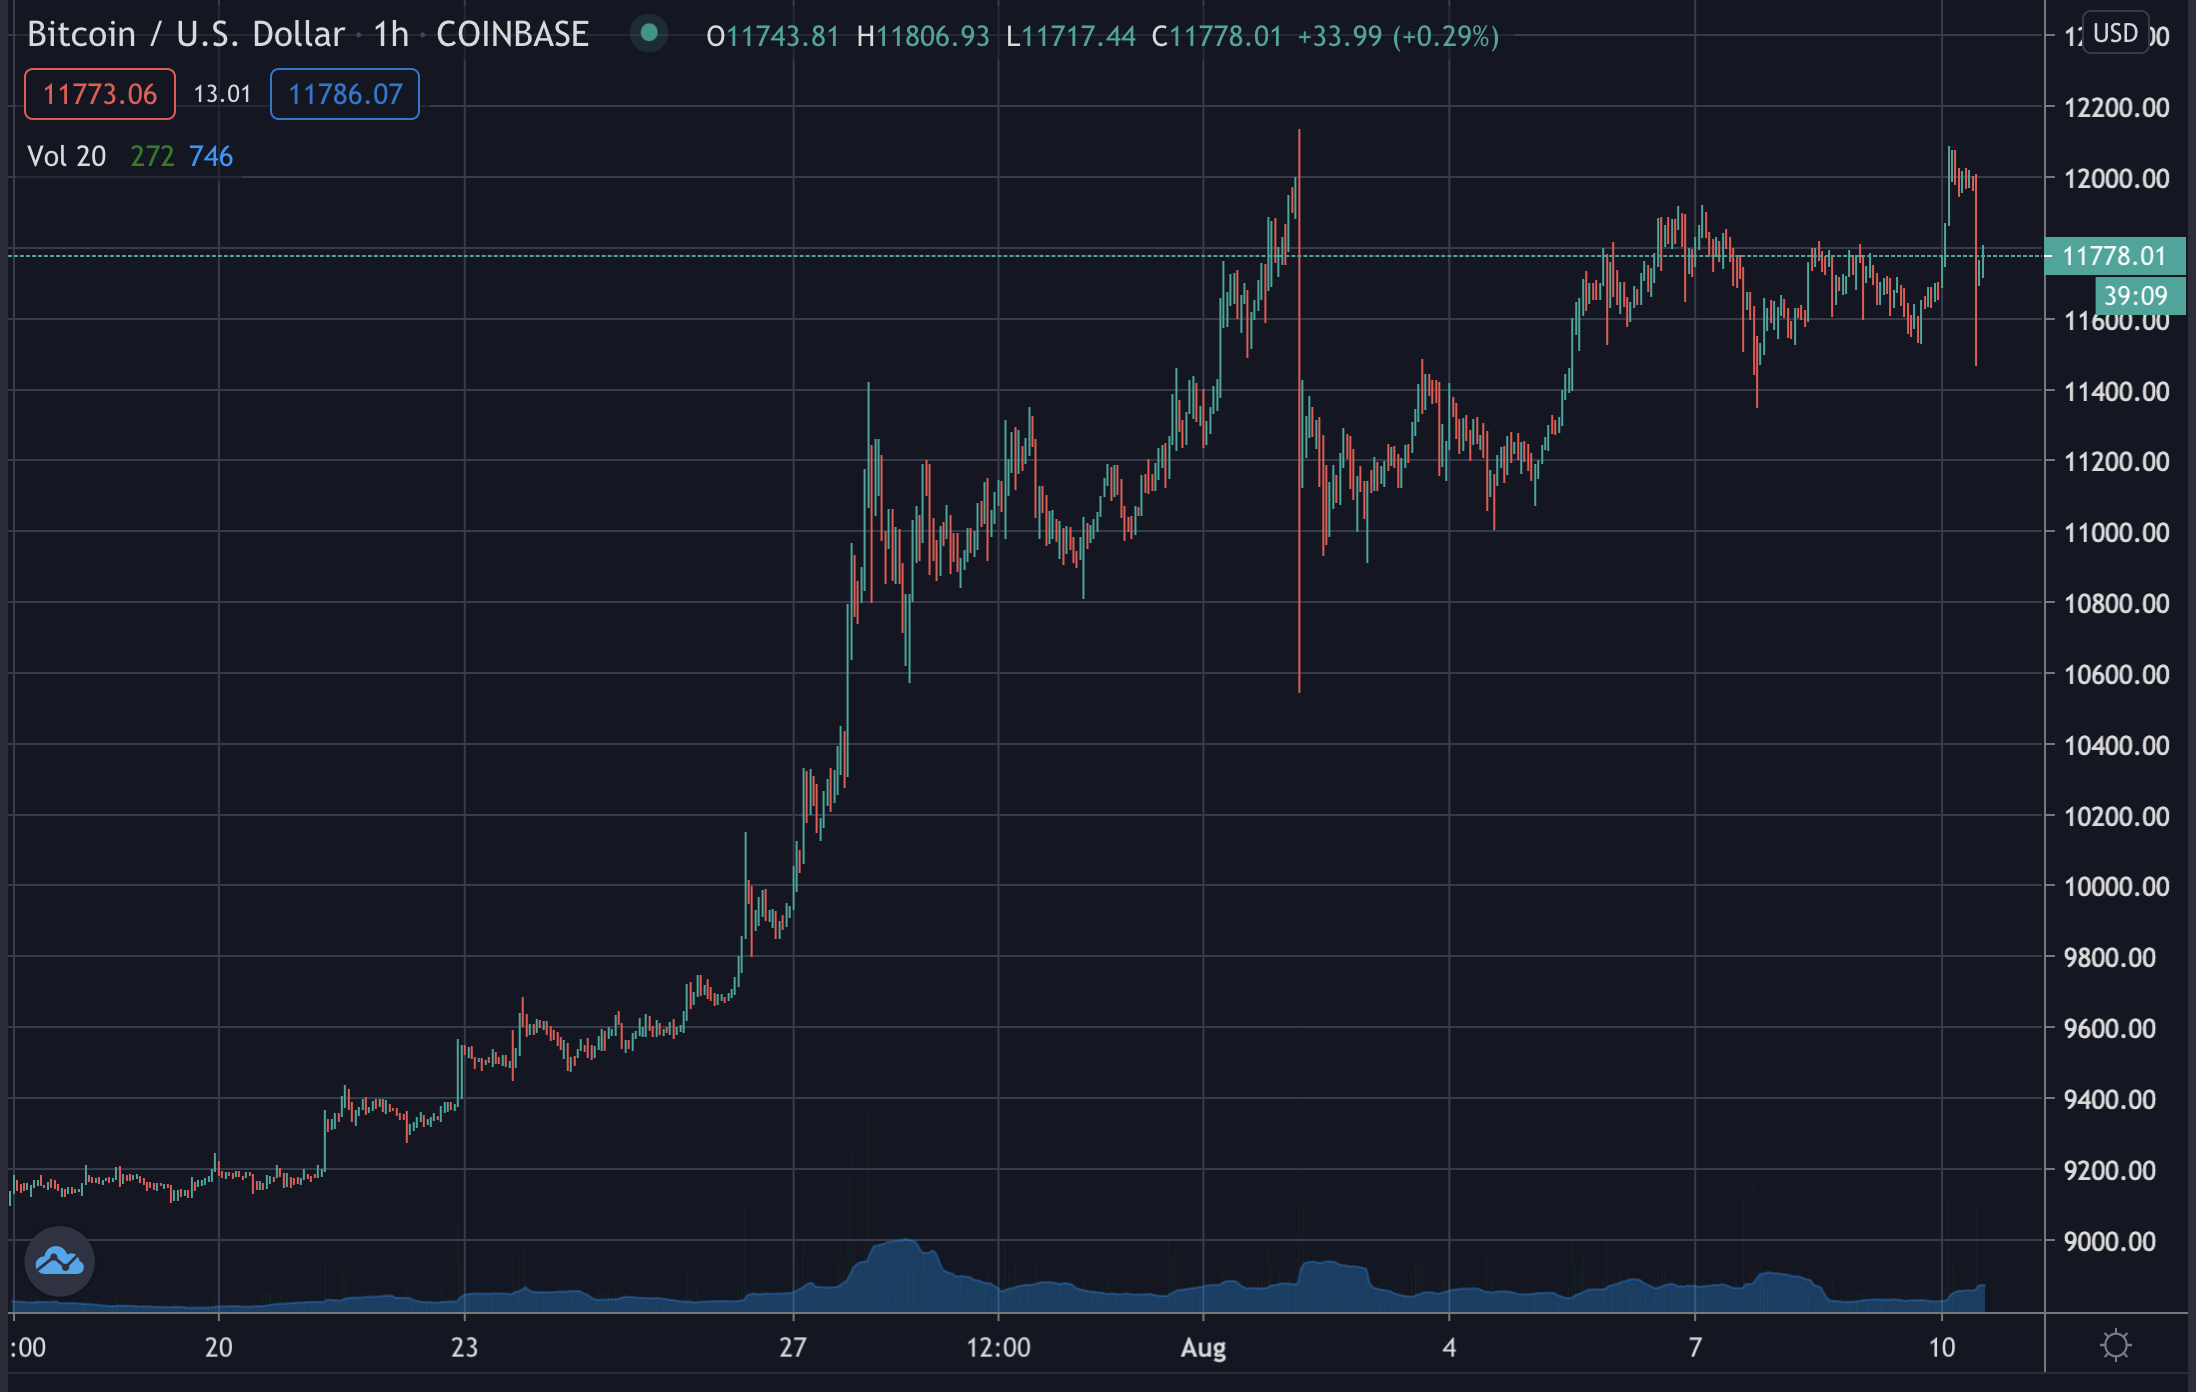 Bitcoin's price, August 2020